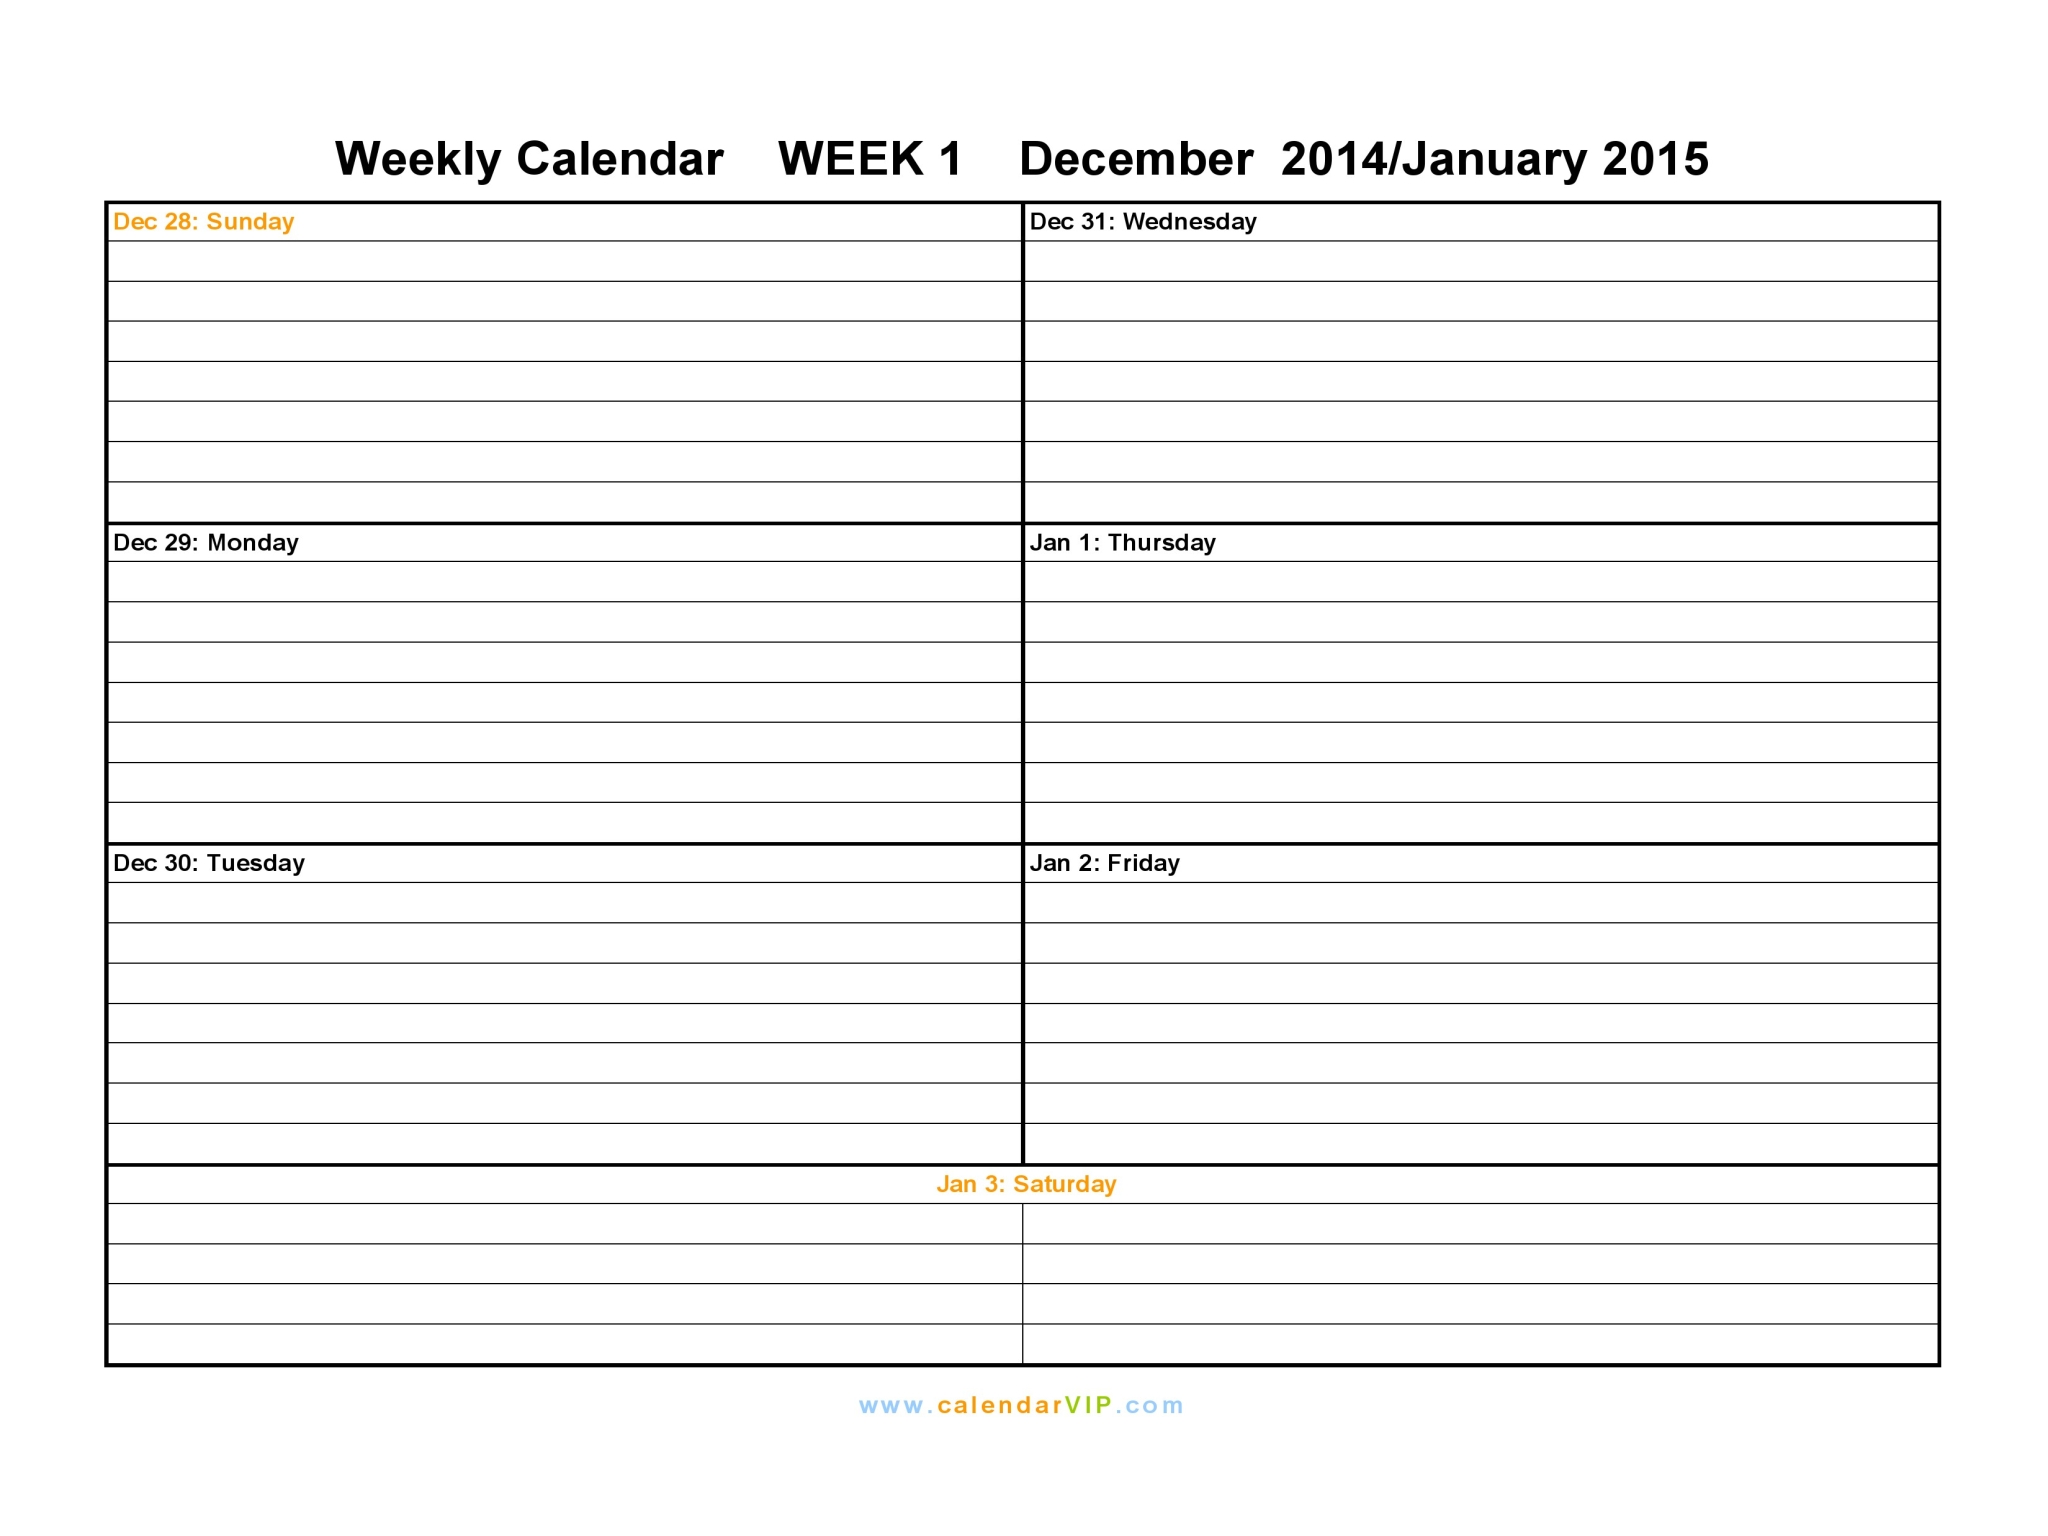 Free Weekly Calendar Templates 2015